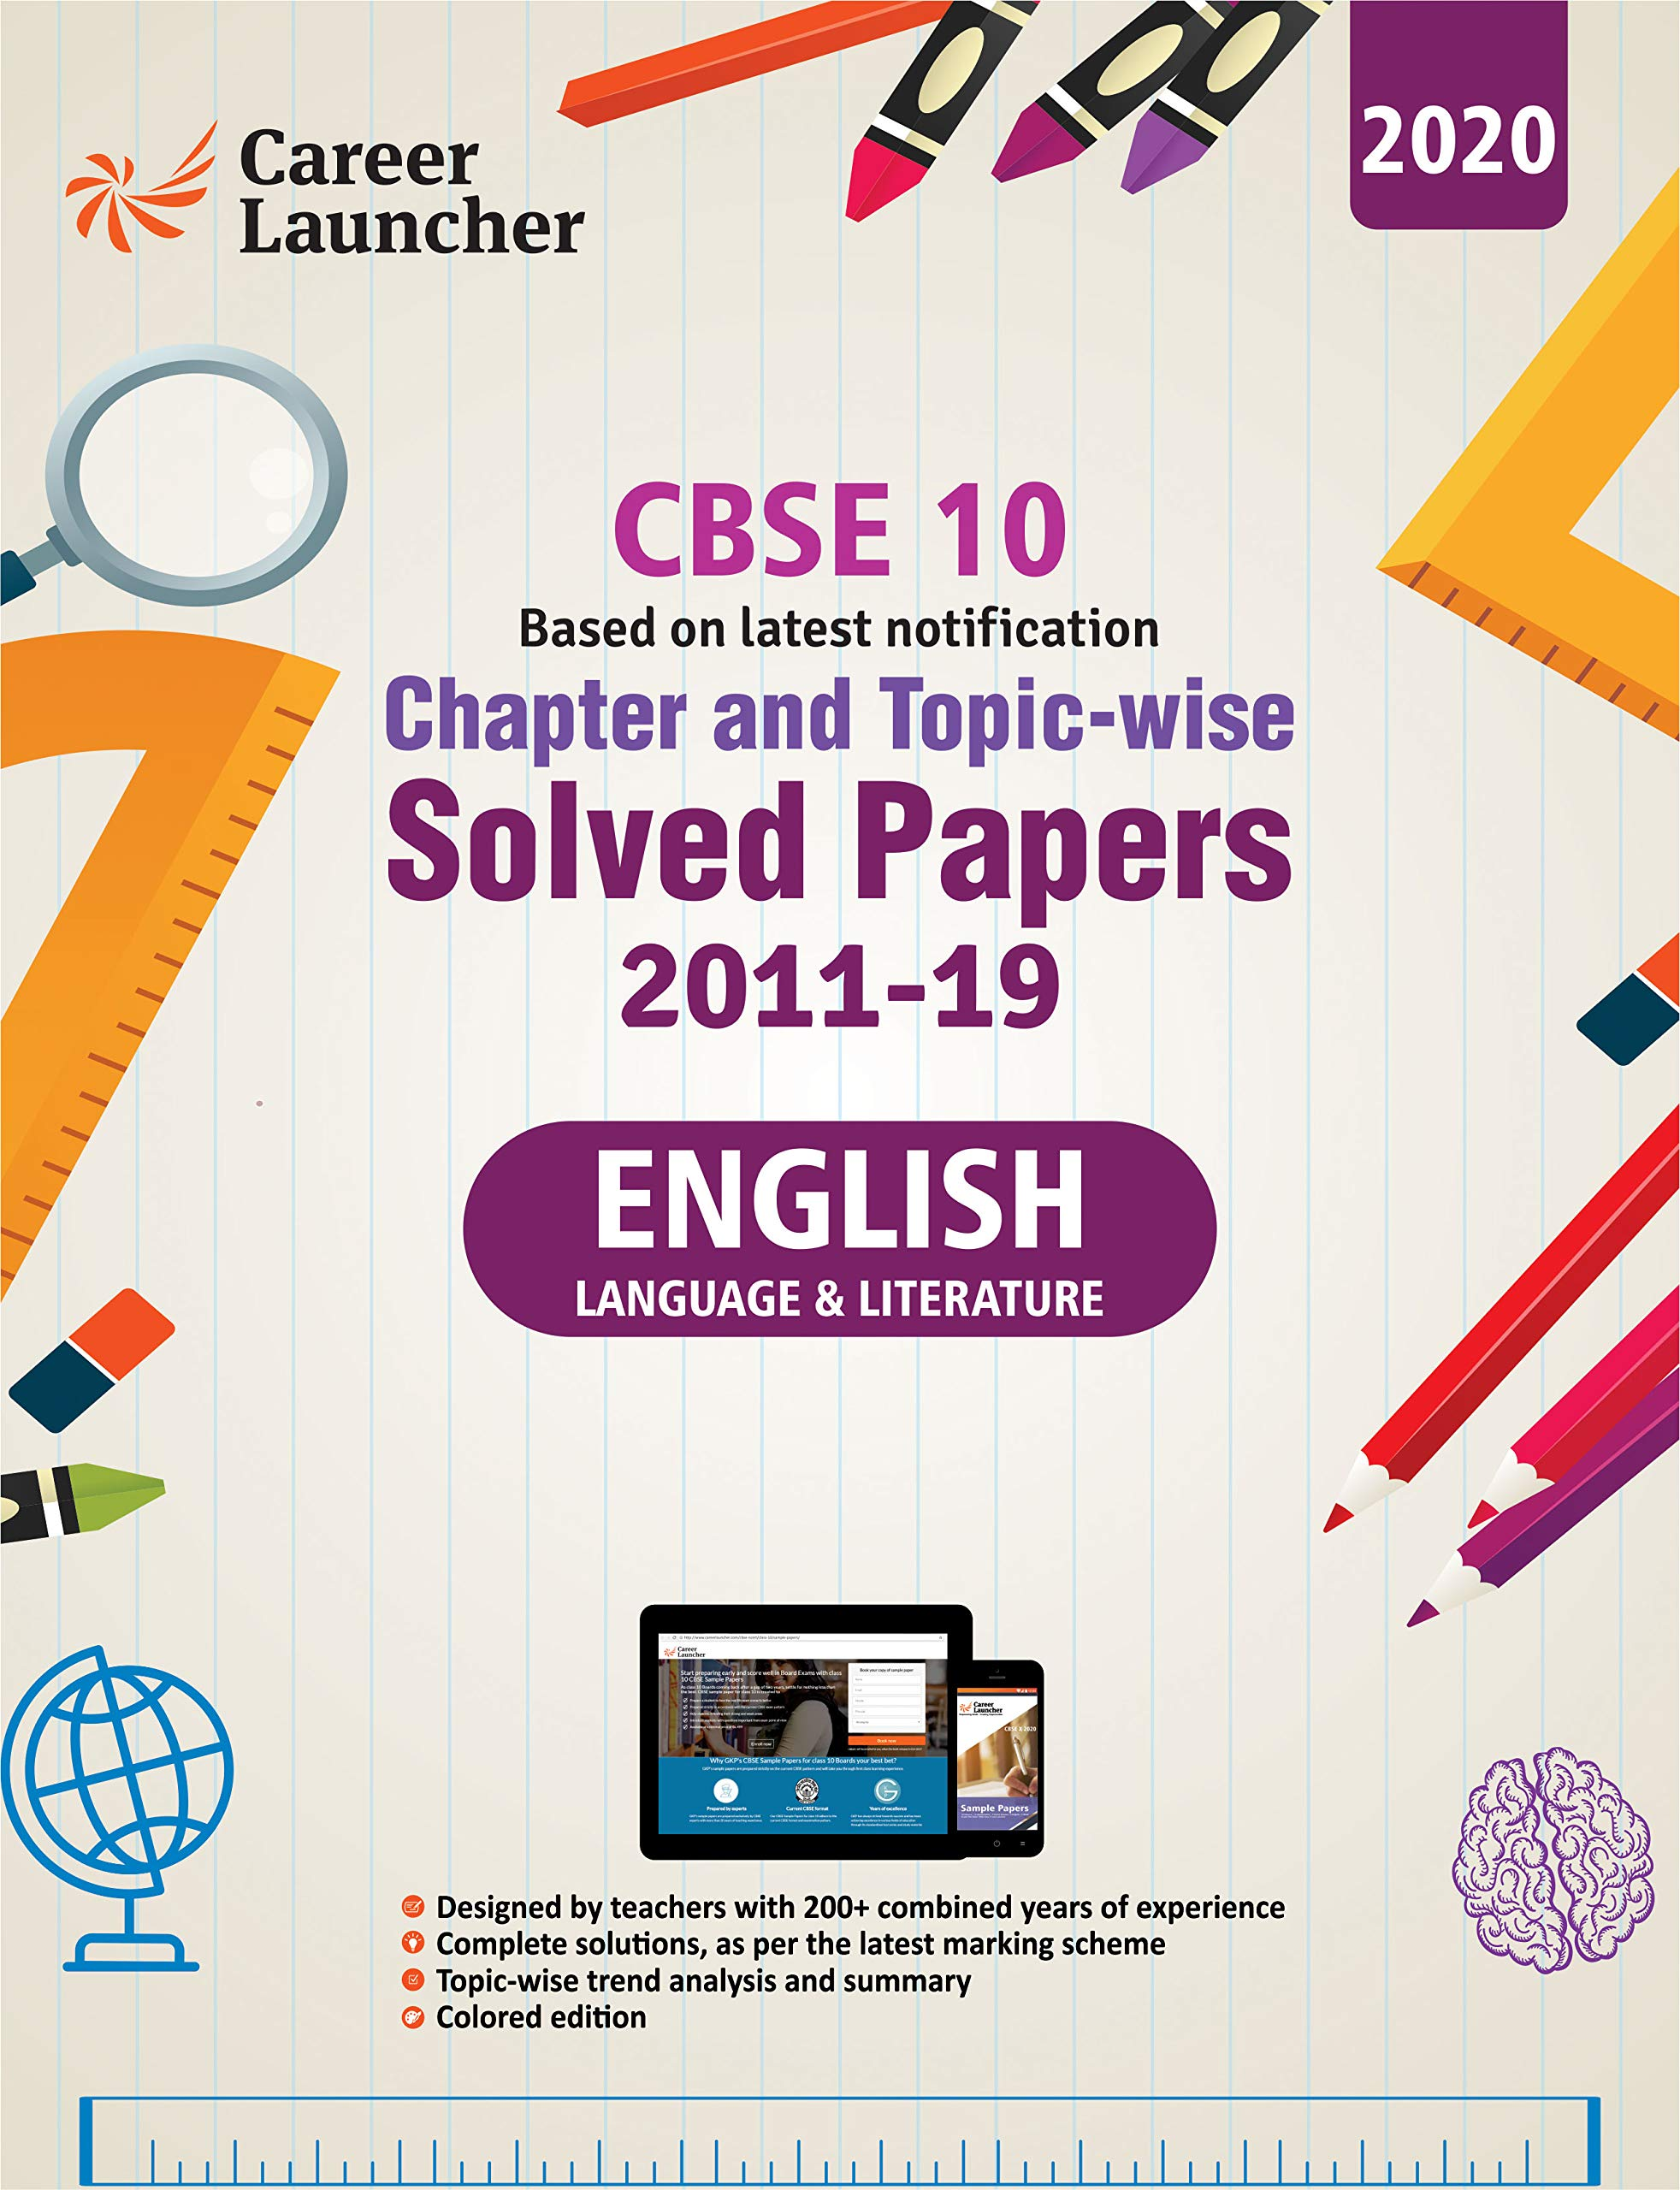 CBSE Class X 2020 - Chapter and Topic-wise Solved Papers 2011-2019 : English Language & Literature - Double Colour Matter Paperback – 27 August 2019